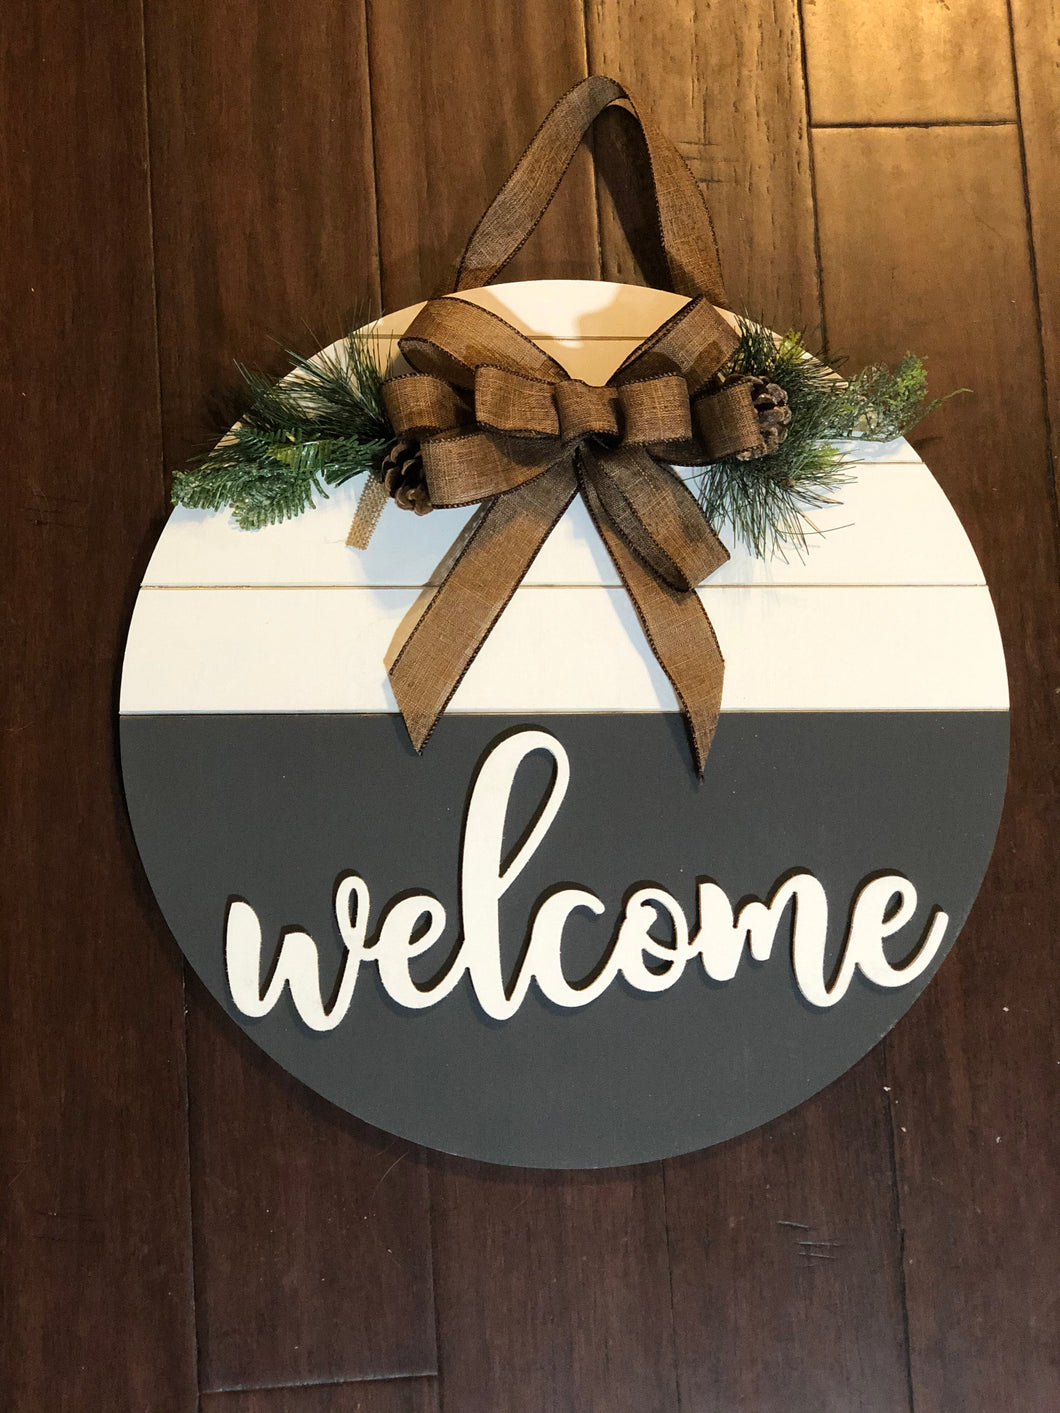 Welcome wooden door round hanger with bow and greenery